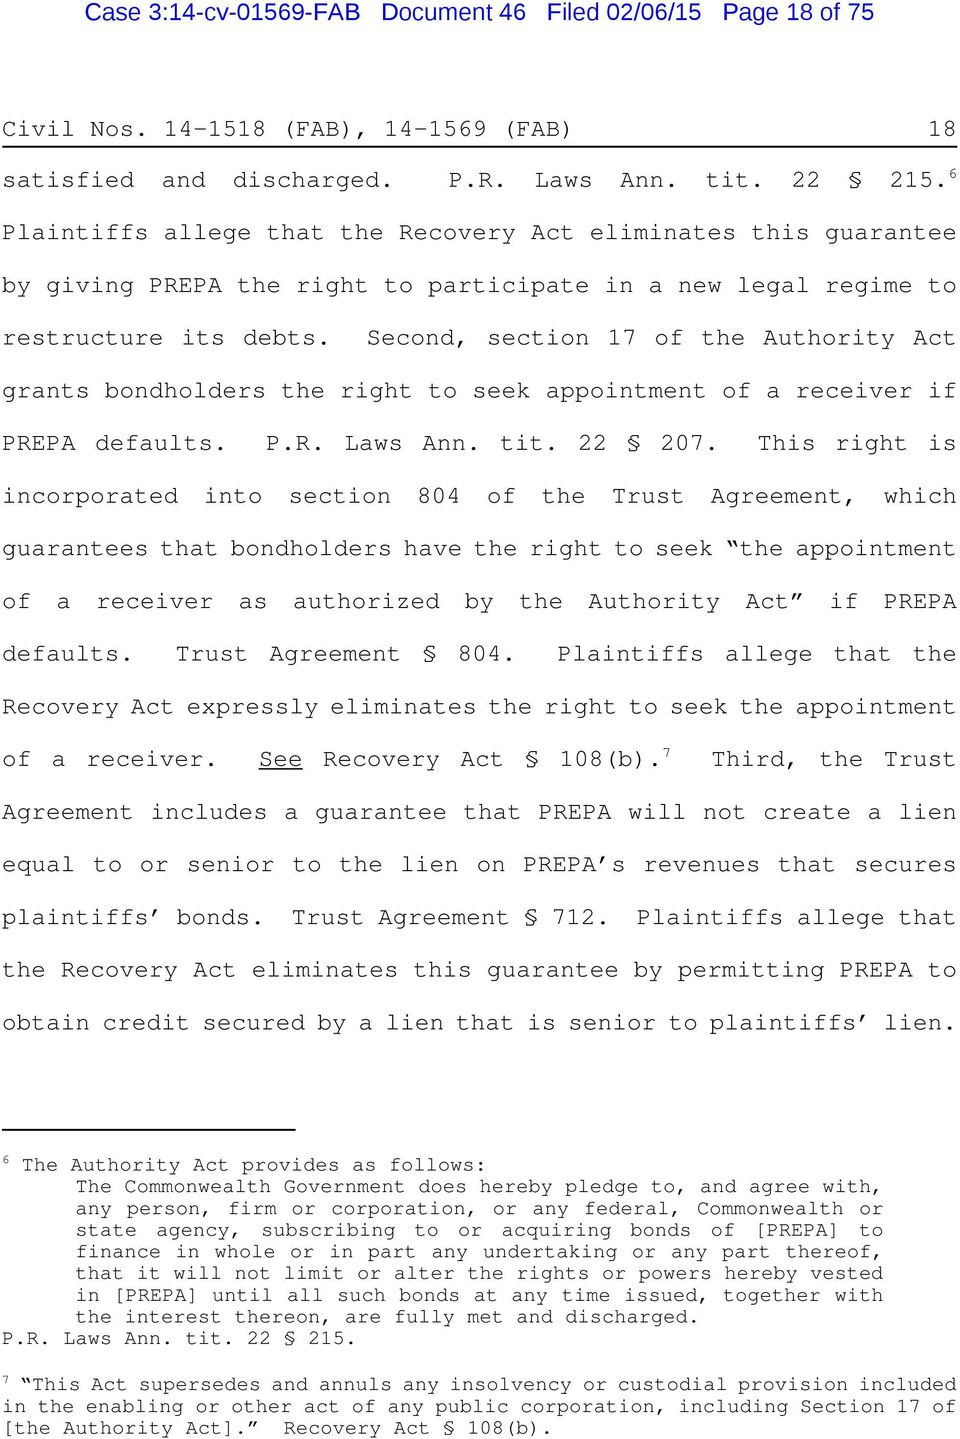 Second, section 17 of the Authority Act grants bondholders the right to seek appointment of a receiver if PREPA defaults. P.R. Laws Ann. tit. 22 207.